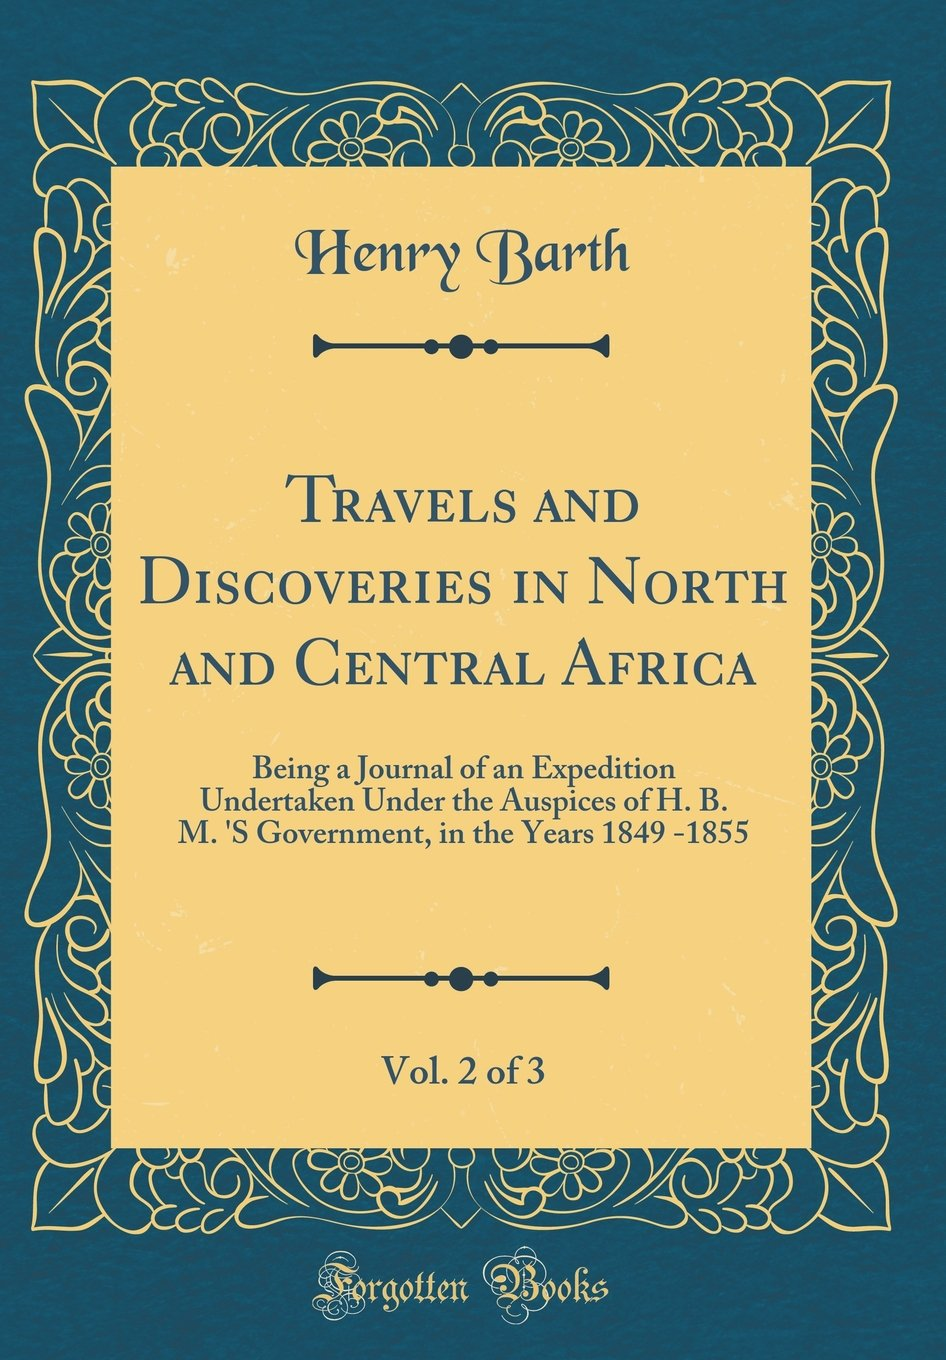 Travels and Discoveries in North and Central Africa, Vol. 2 of 3: Being a Journal of an Expedition Undertaken Under the Auspices of H. B. M. 'S Government, in the Years 1849 -1855 (Classic Reprint) ebook